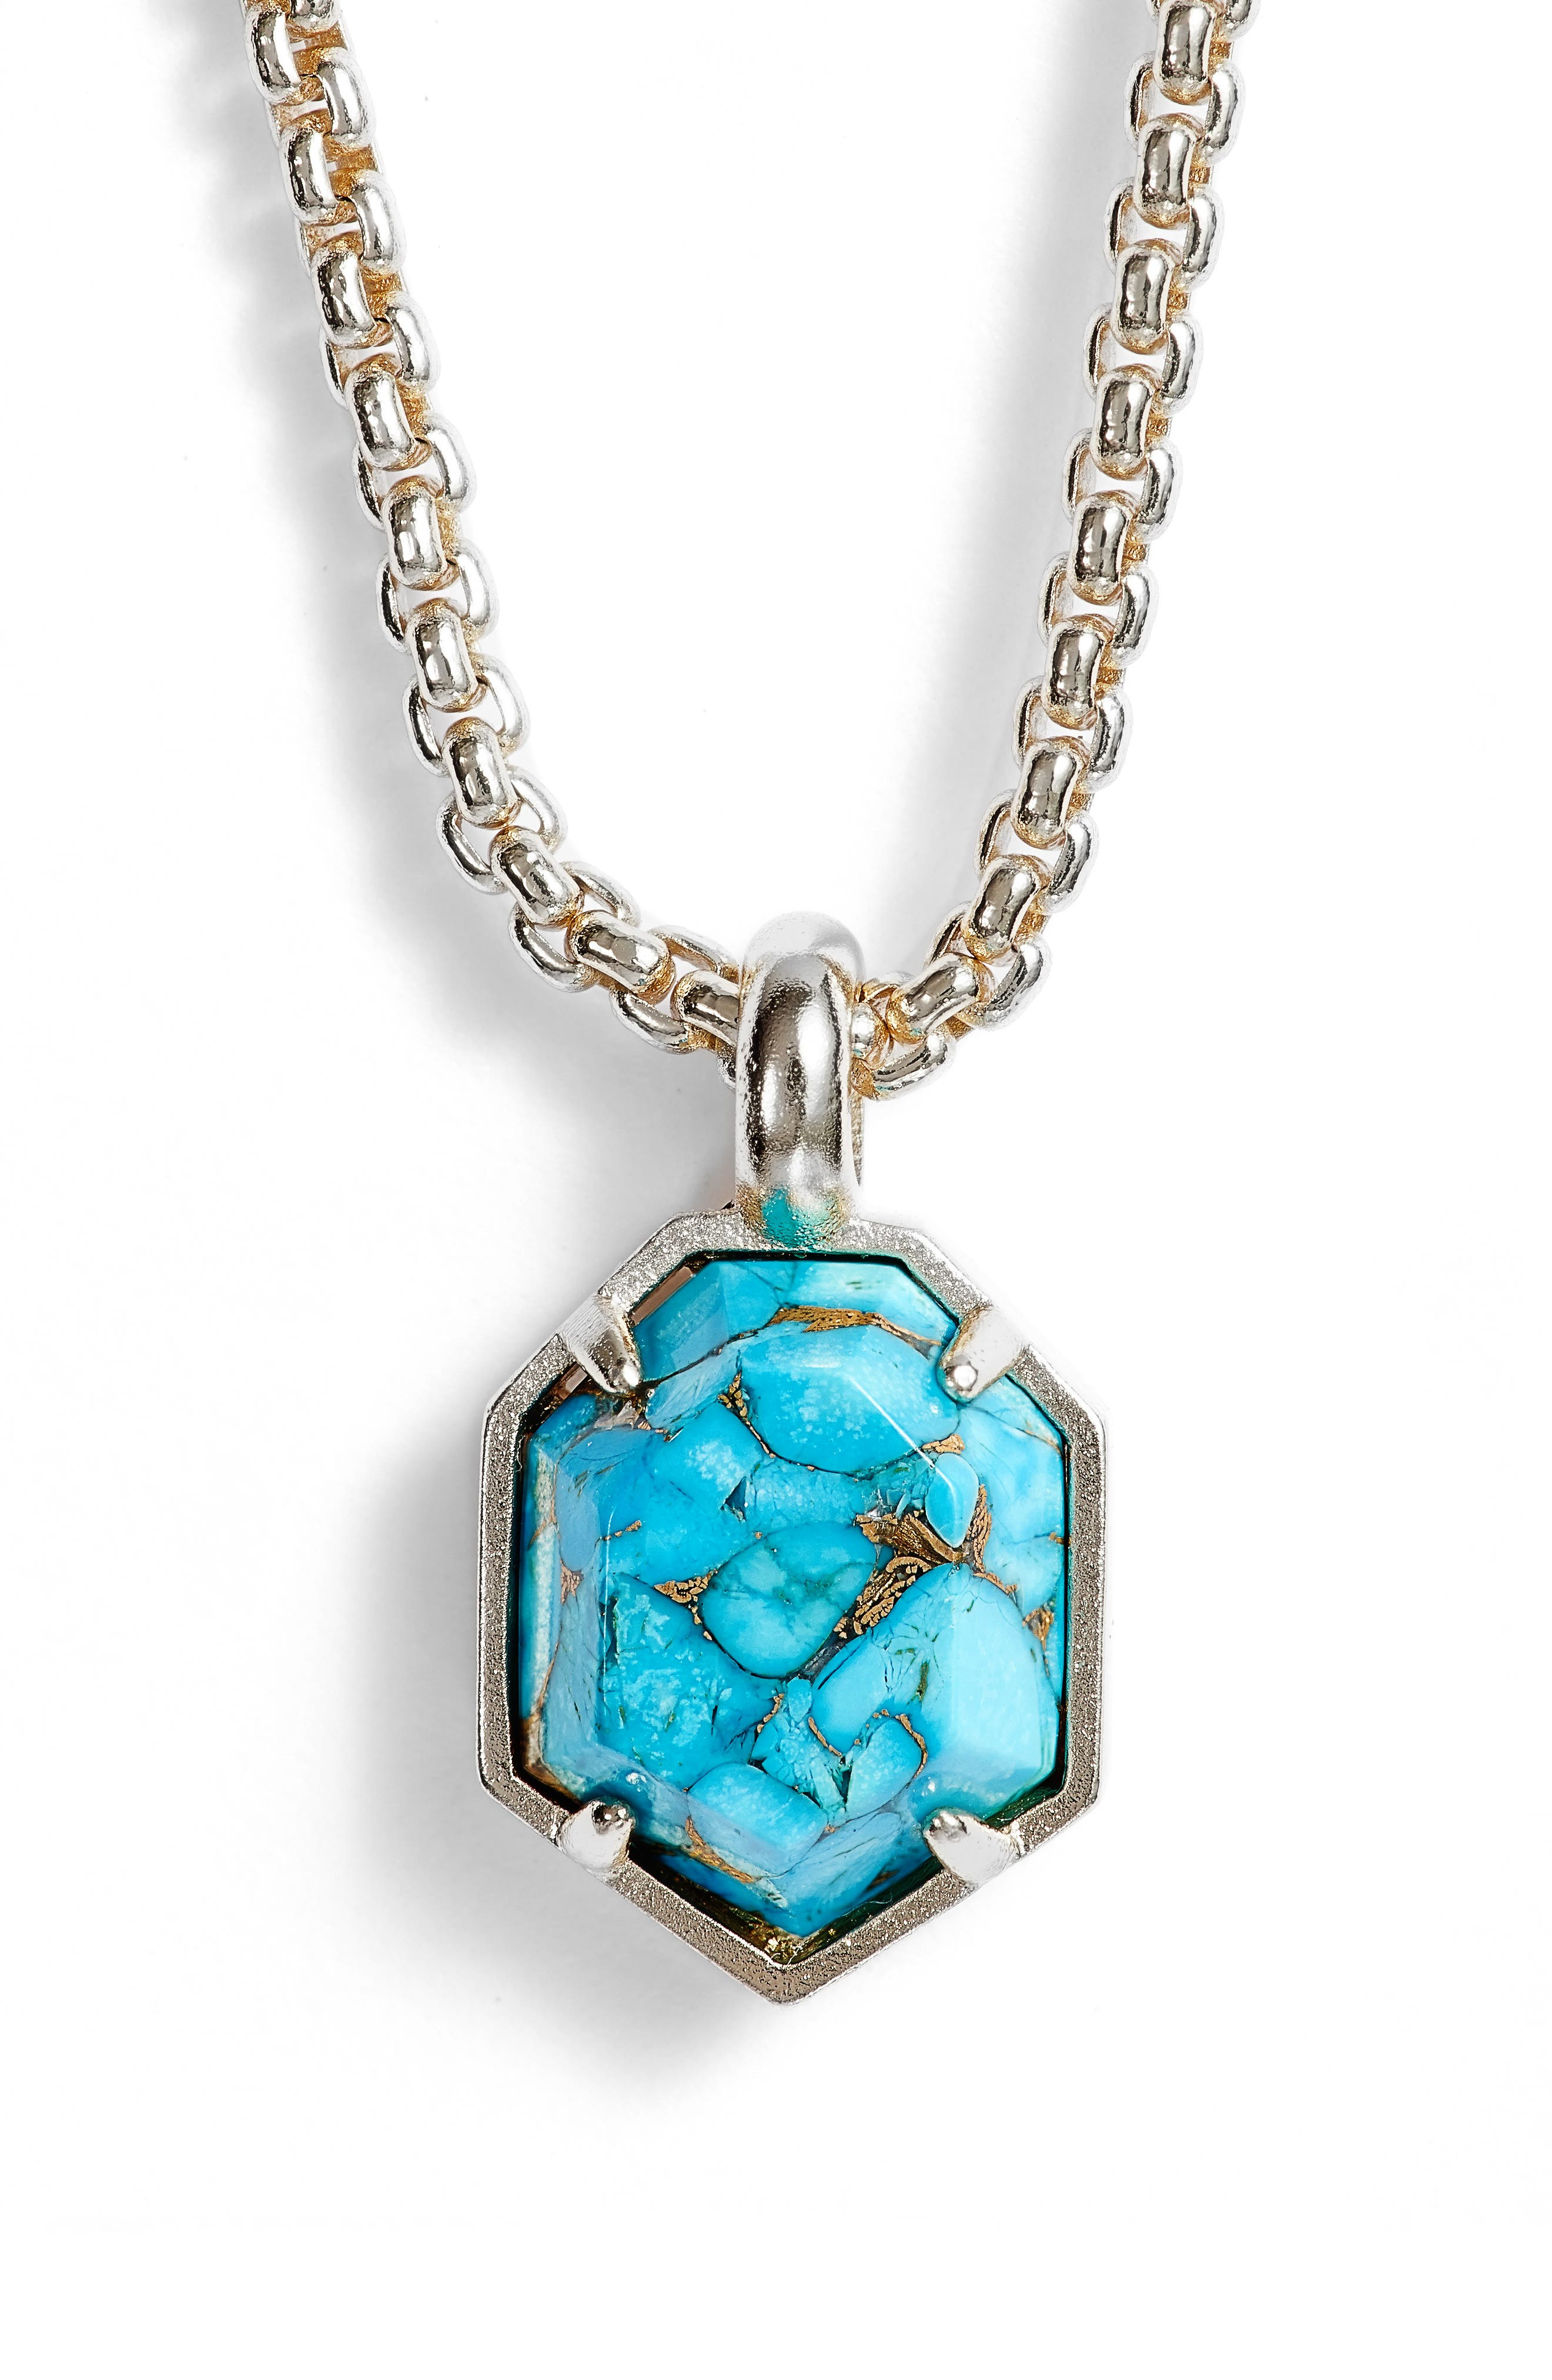 Teo Semiprecious Pendant Necklace,                             Alternate thumbnail 2, color,                             Turquoise/ Bronze